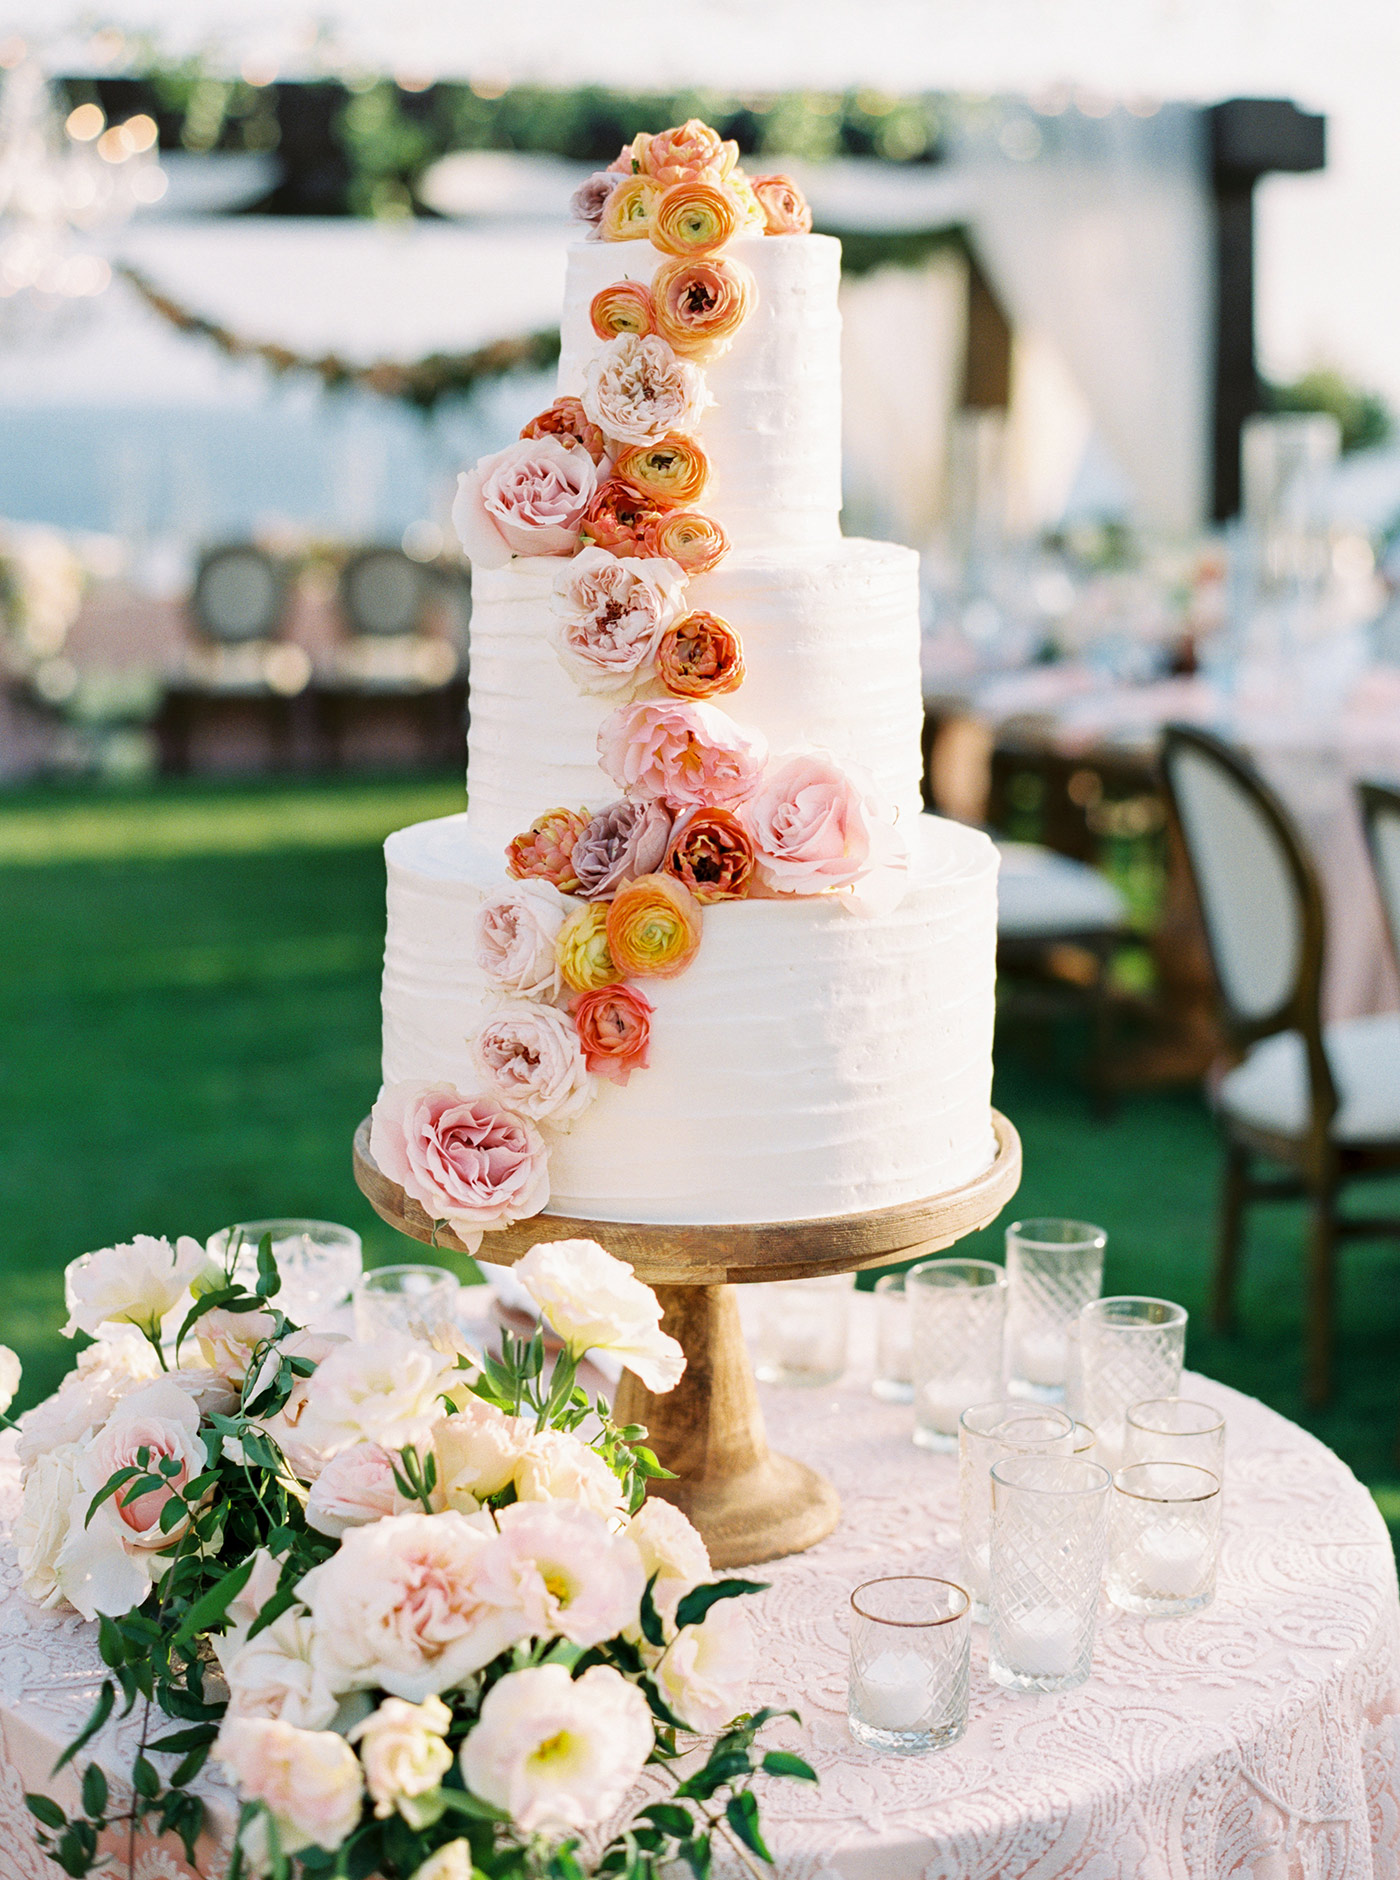 mykaela and brendon wedding white cake with cascading flowers